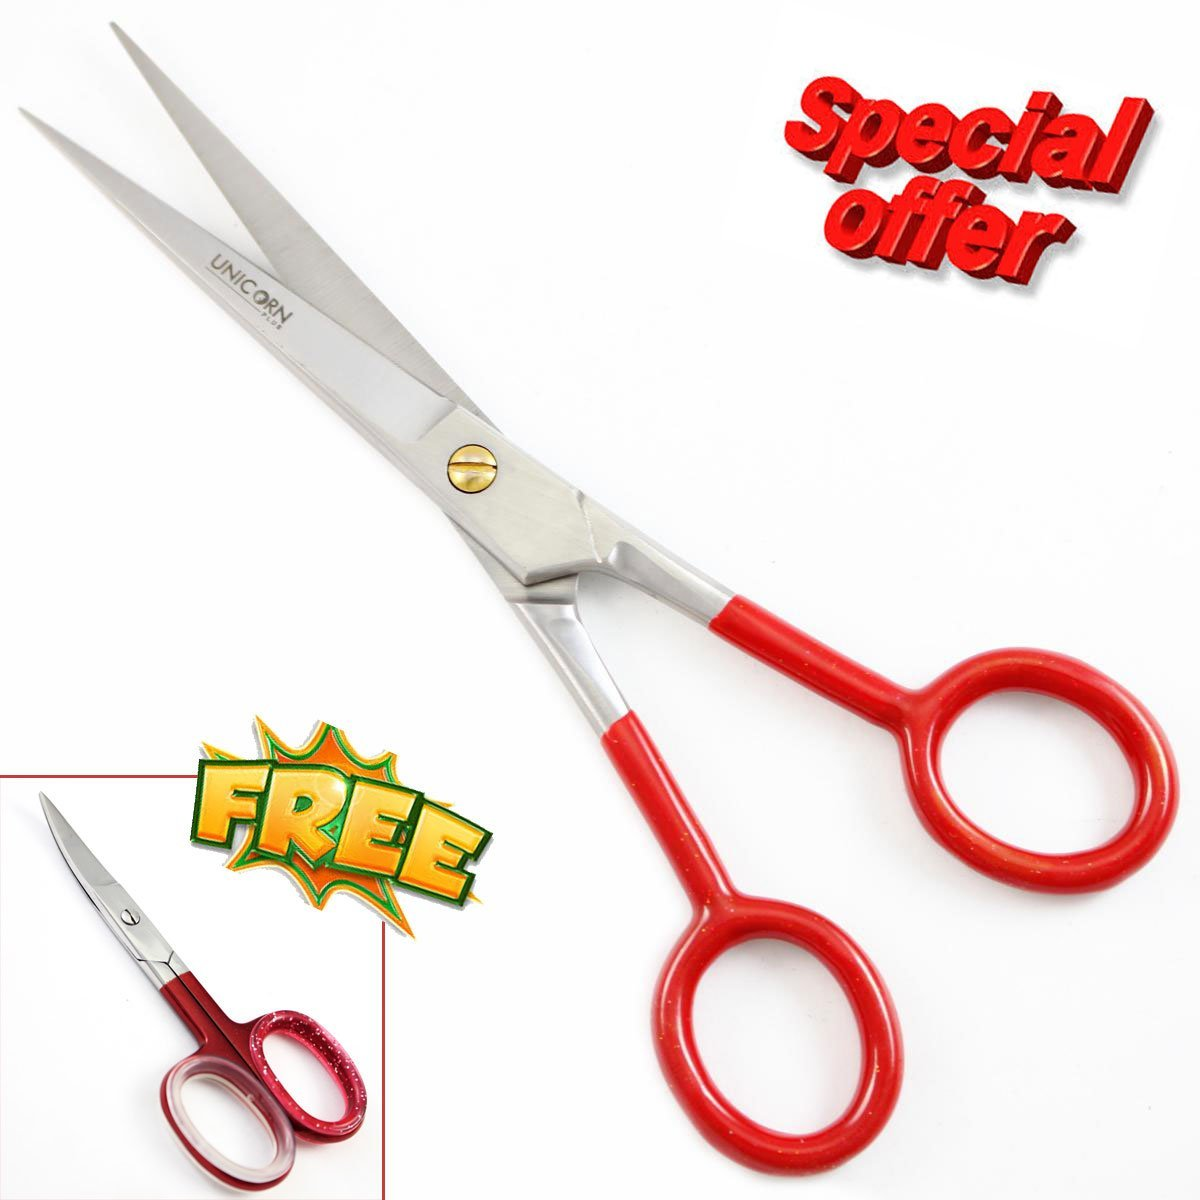 """Xmas / New Year Sales - Professional Hair Scissors - Super Cut Professional Top Quality Hair Cutting Barber Scissors,Shears 6.5 inch hairdressing Scissors to Cut Hair + FREE 3.5"""" Nail Scissors"""